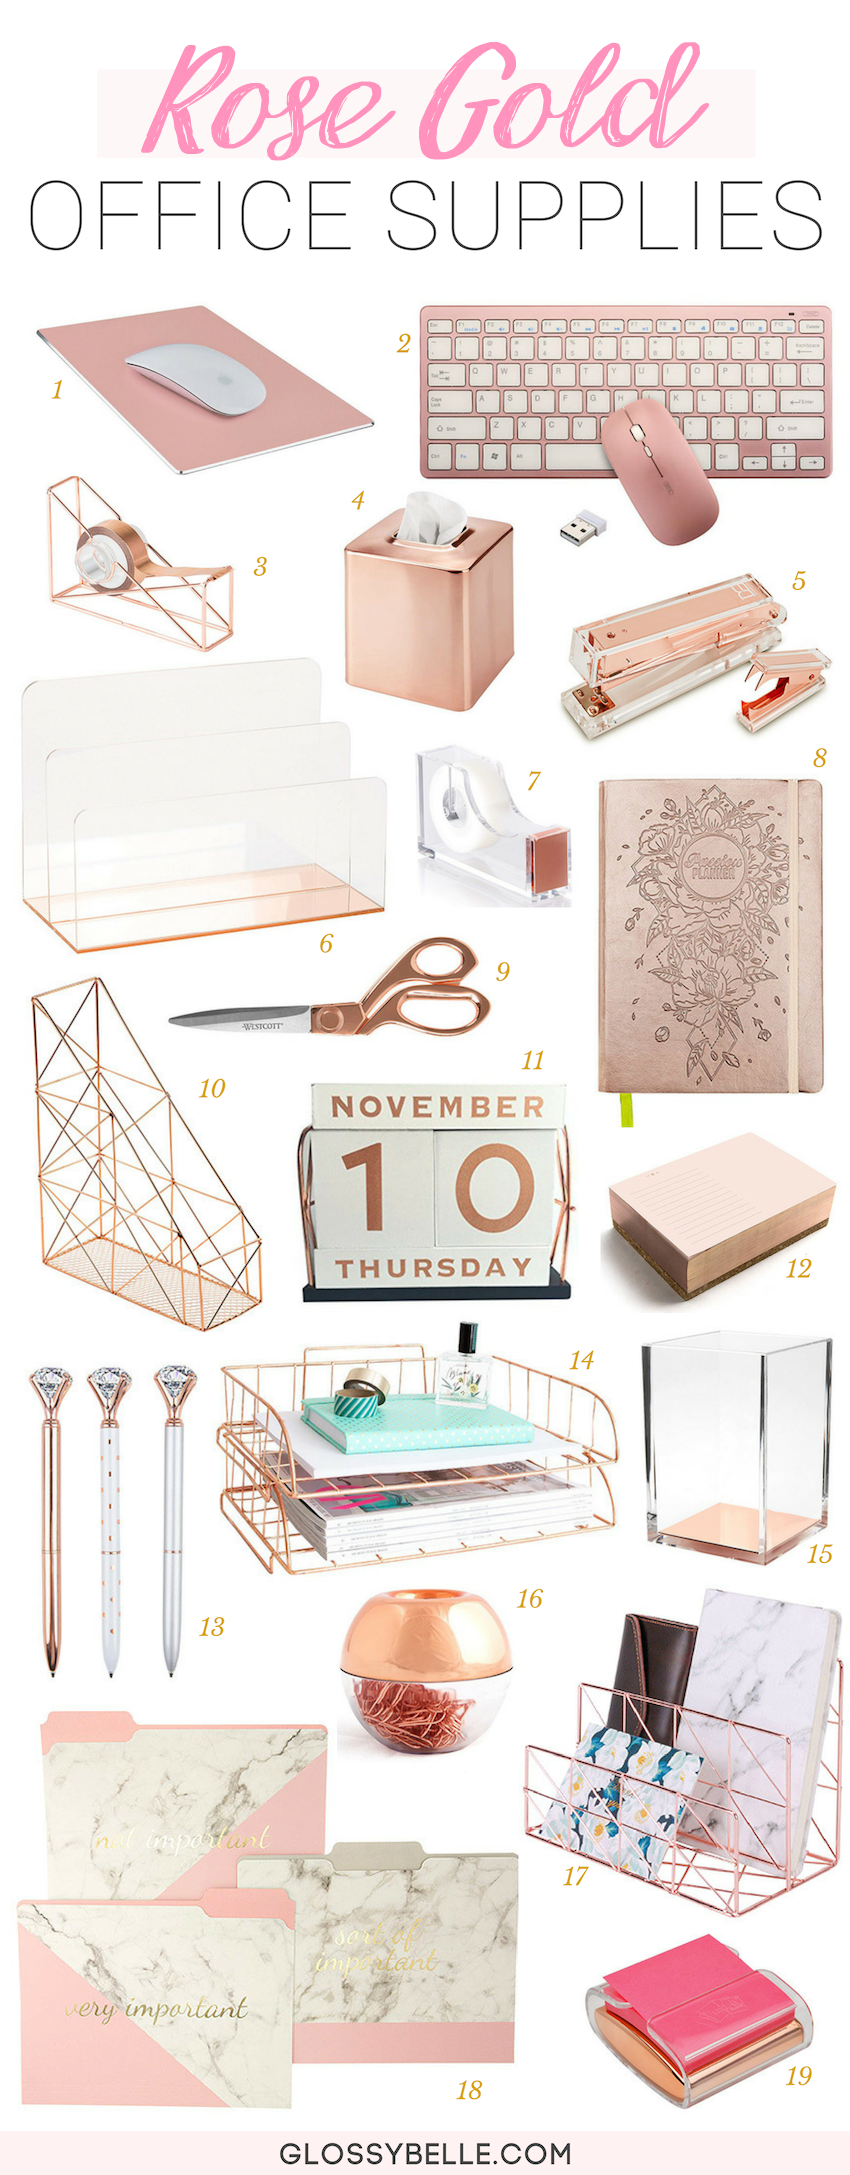 Looking to add some glitz and glam to your home office or your work desk? You'll definitely want to check out my ultimate list of rose gold office supplies & desk accessories to create a feminine work space.   glamorous   acrylic   pretty things   rose gold supplies   rose gold desk decor   work desk decor   cubicle   girlboss   inspiration #workspace #homeoffice #decorideas #officedecor #rosegold #officesupplies #desk #organization